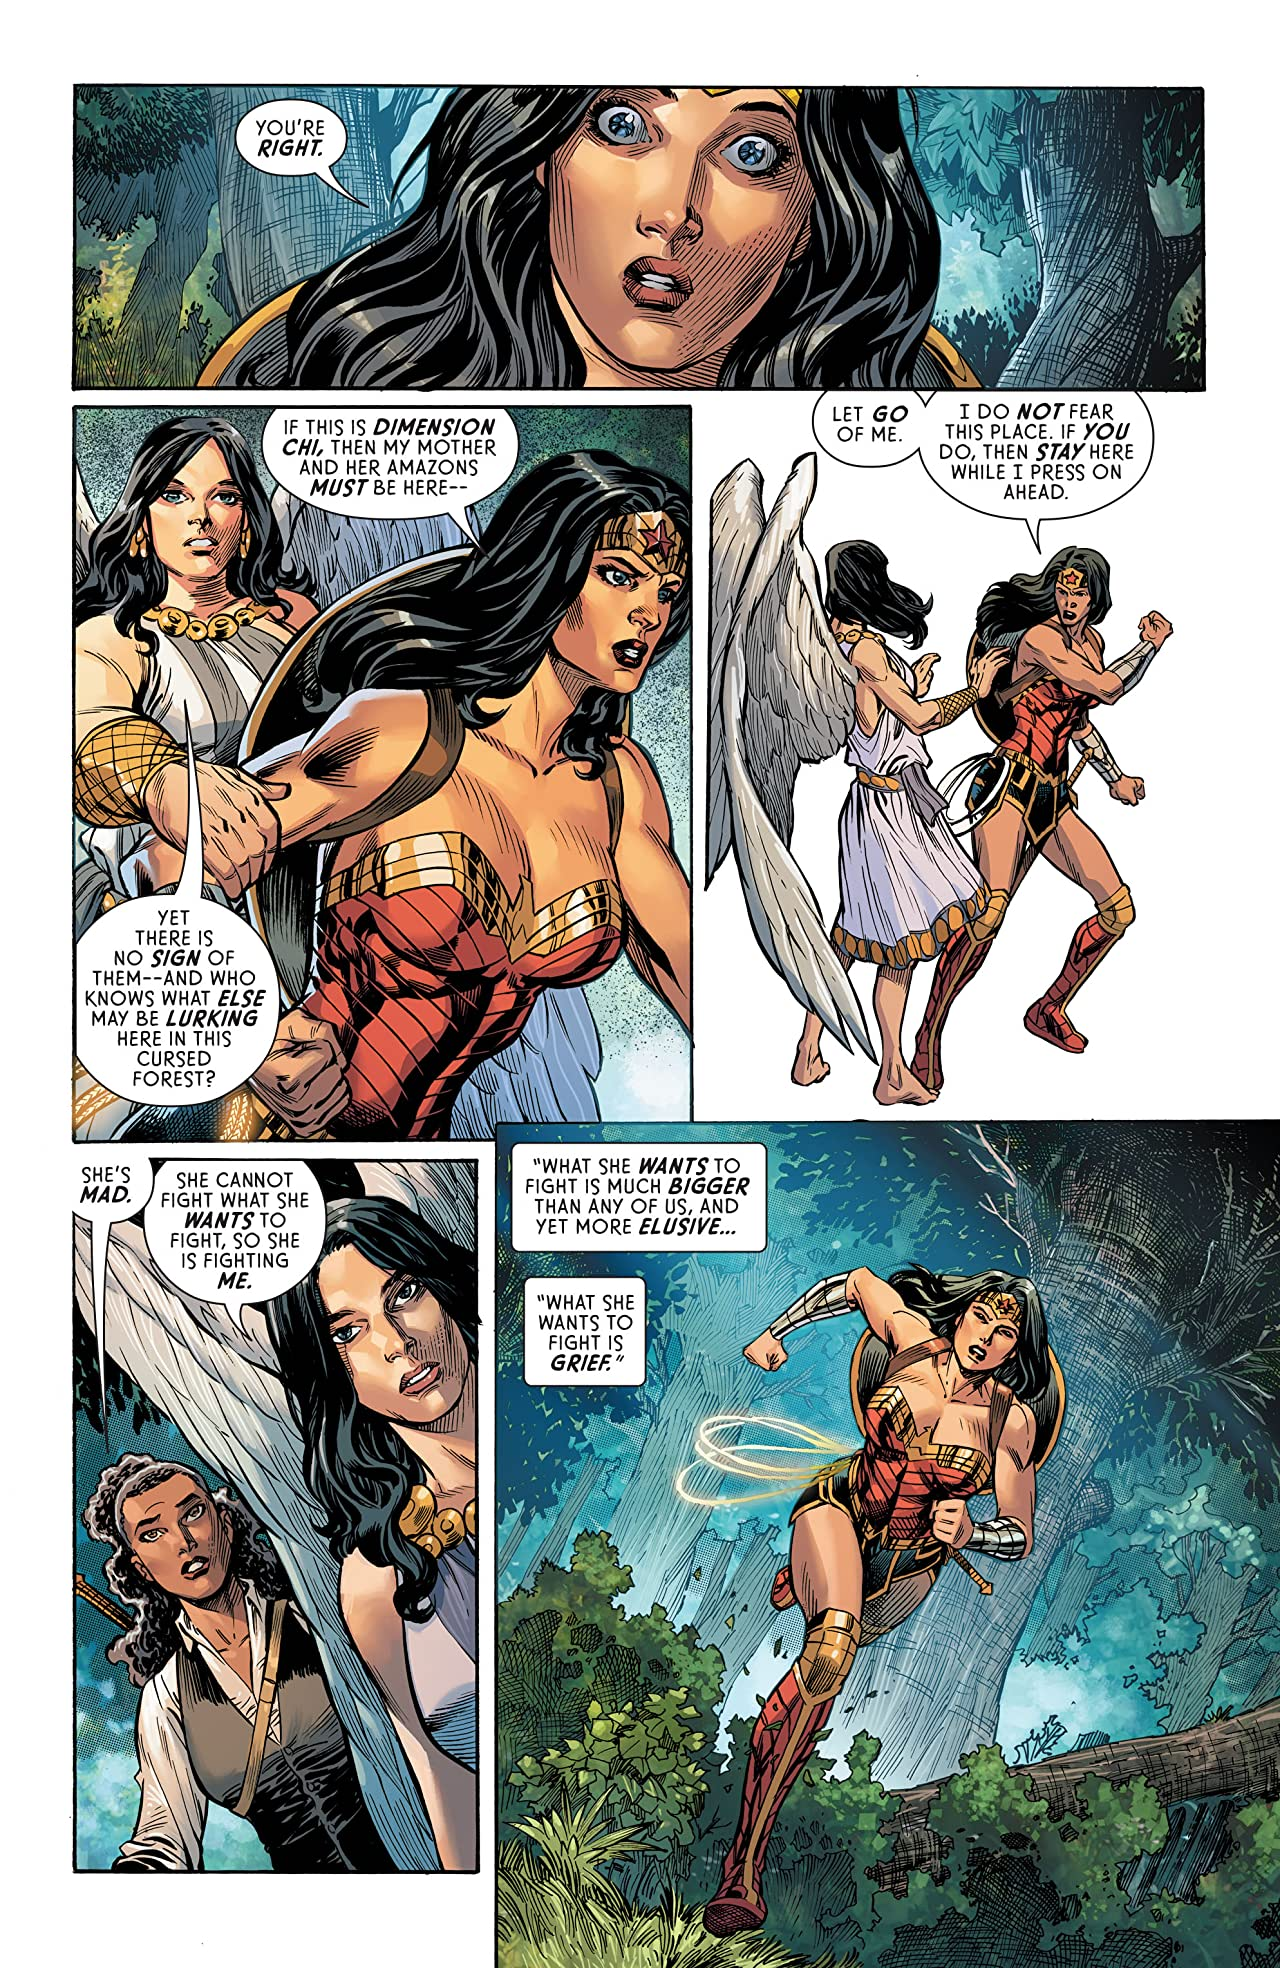 Wonder Woman: Loveless Vol. 3